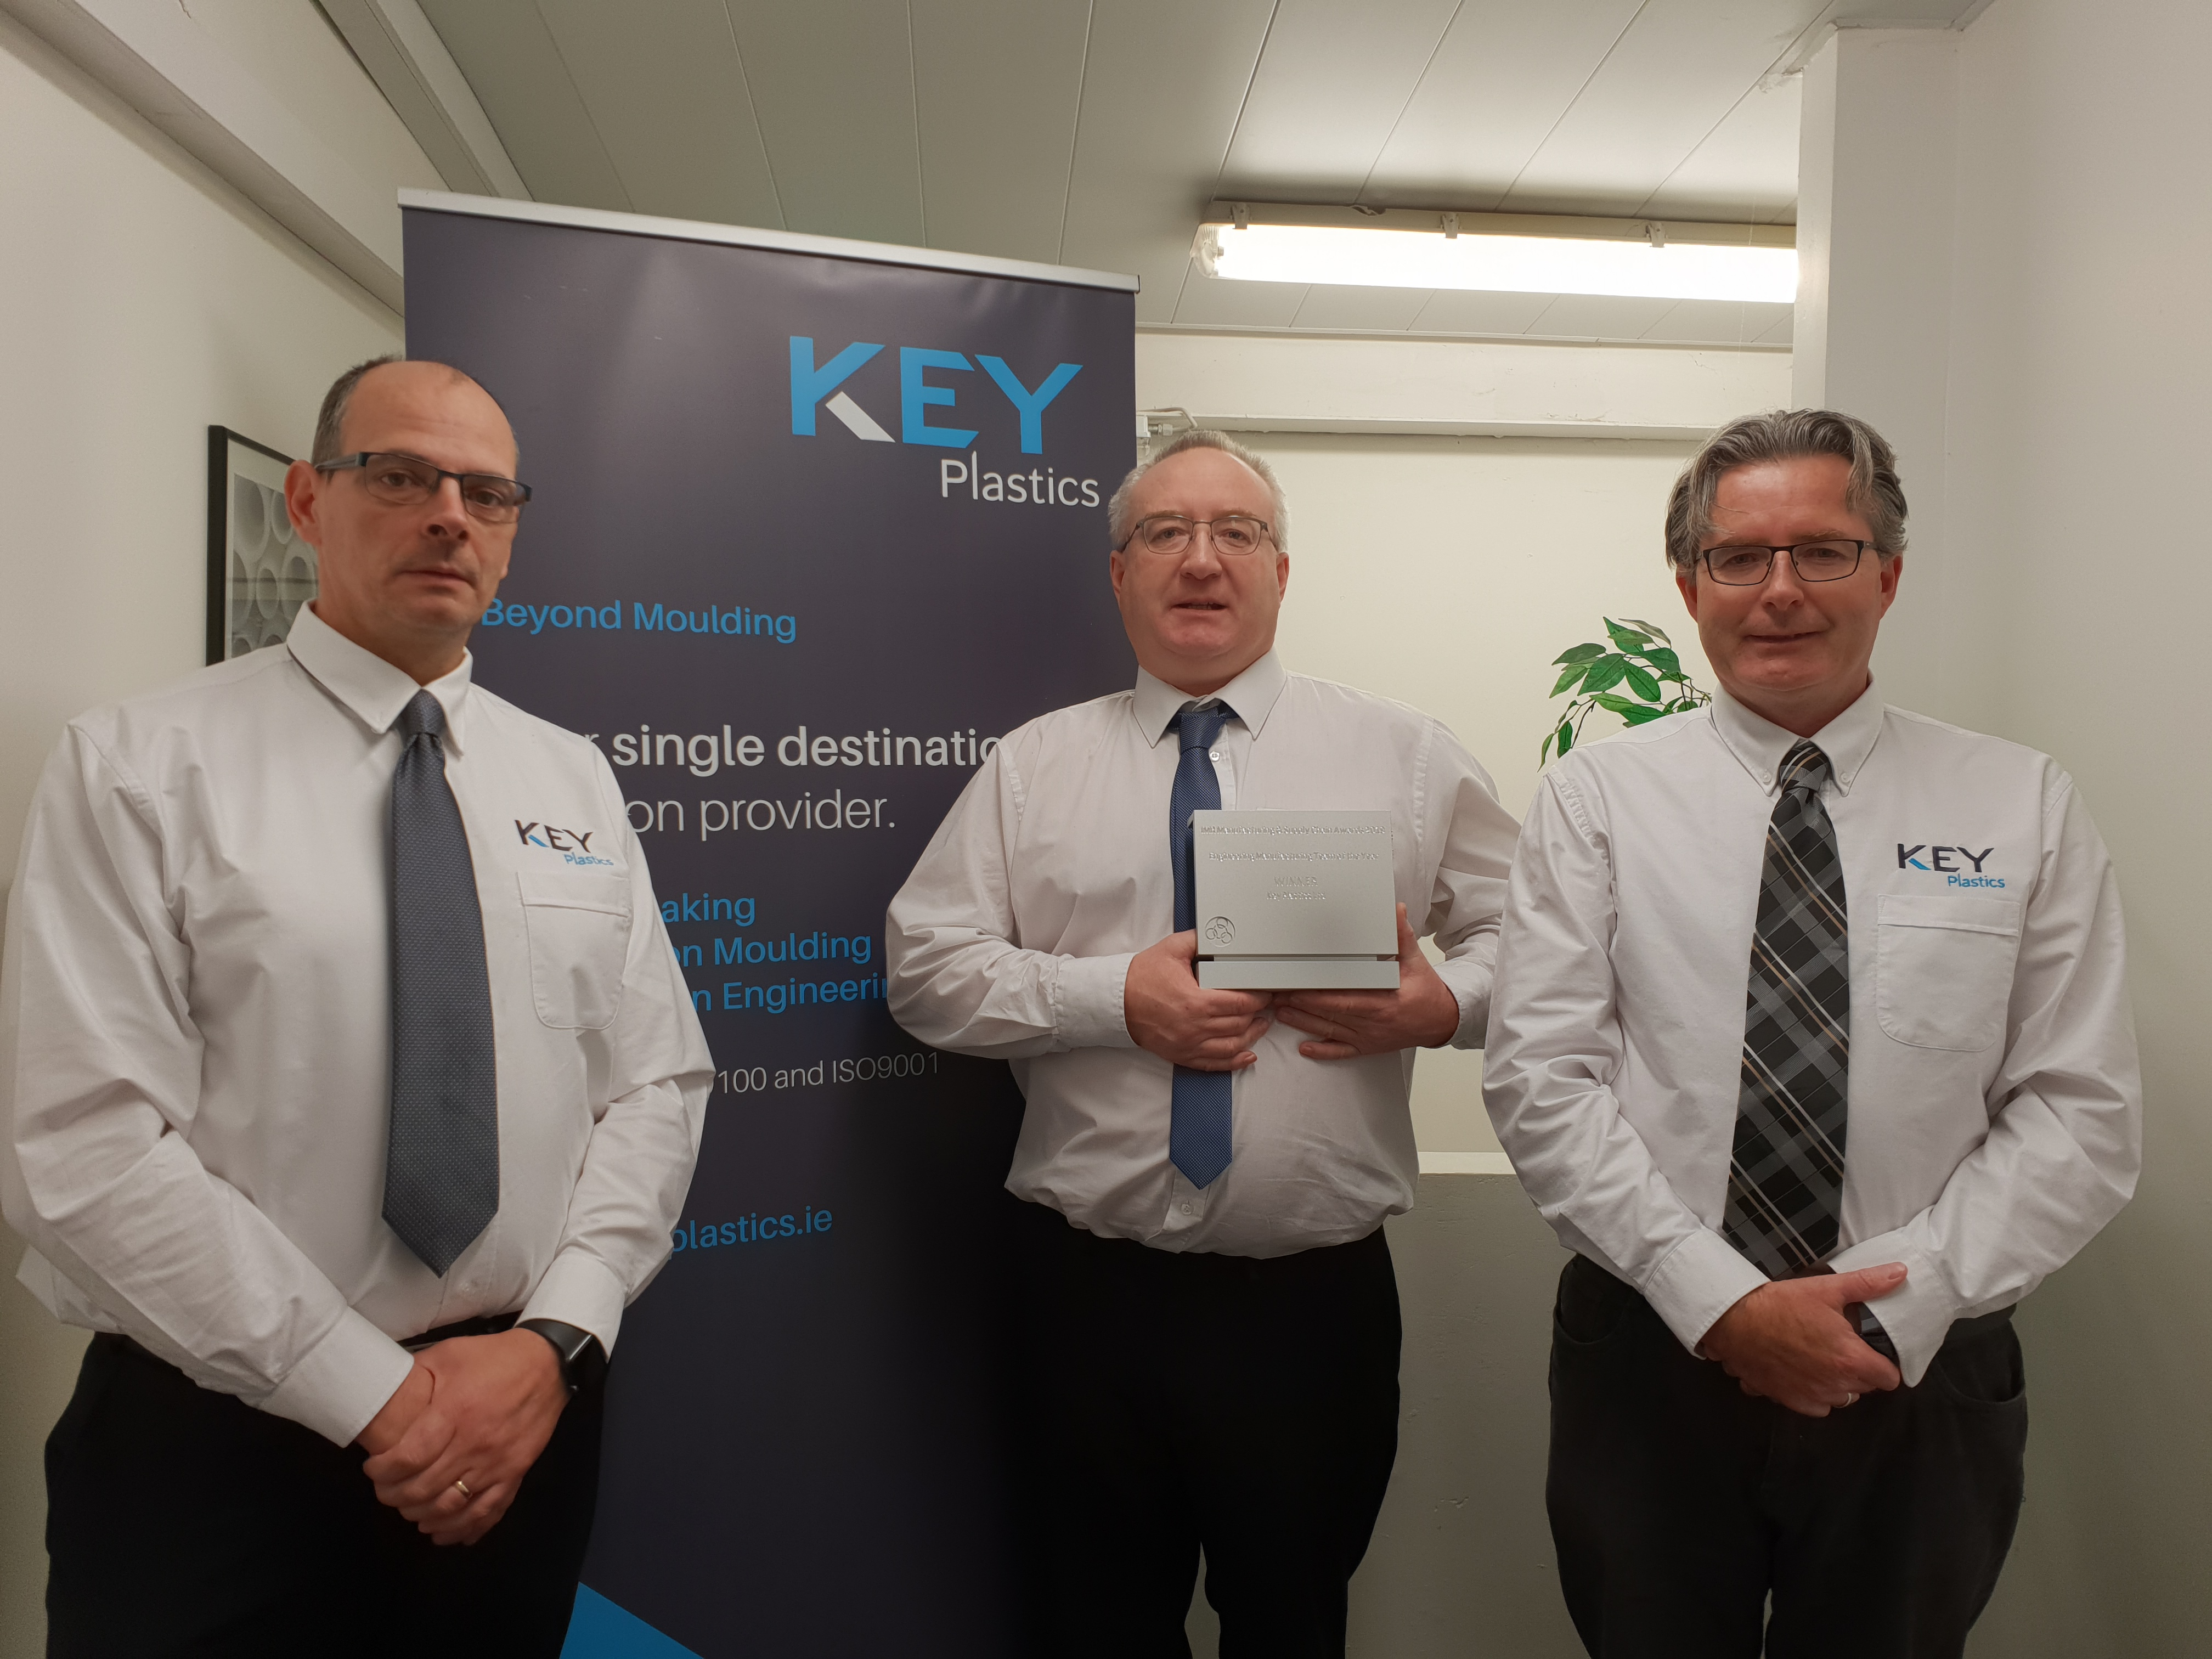 Key Plastics win Engineering Manufacturing Team of the Year